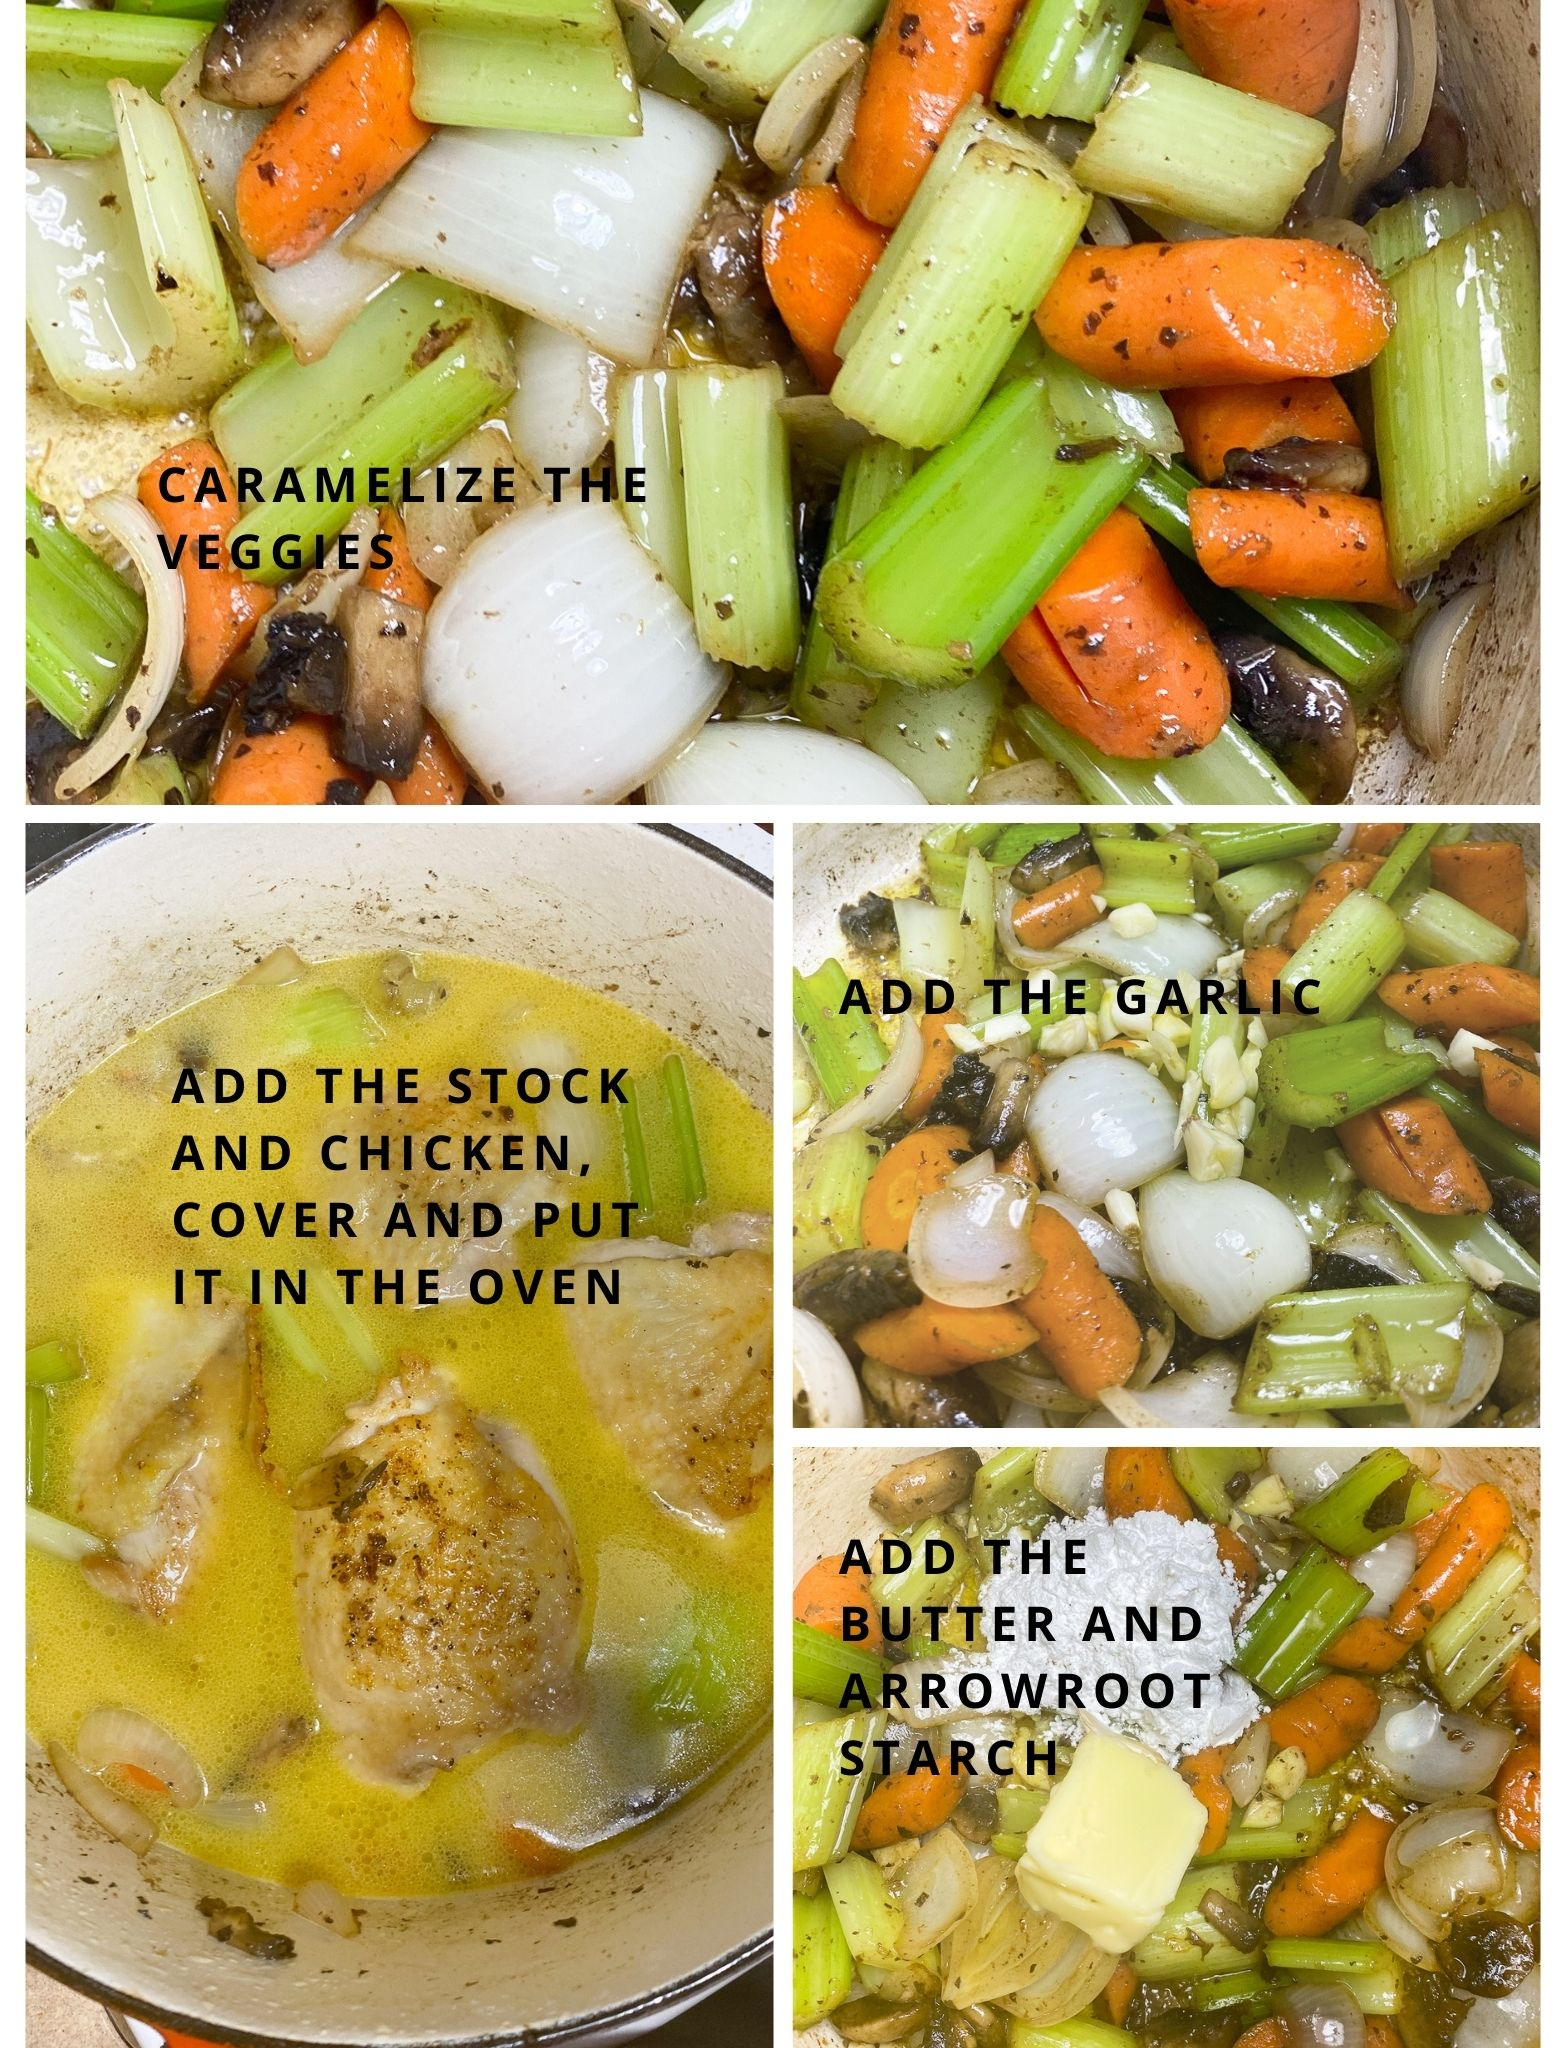 Braising steps starting with caramelizing the veggies, then adding the garlic, adding the butter and arrowroot starch. Pouring the chicken stock into the pot, adding the chicken back in to cover and place it in the oven.